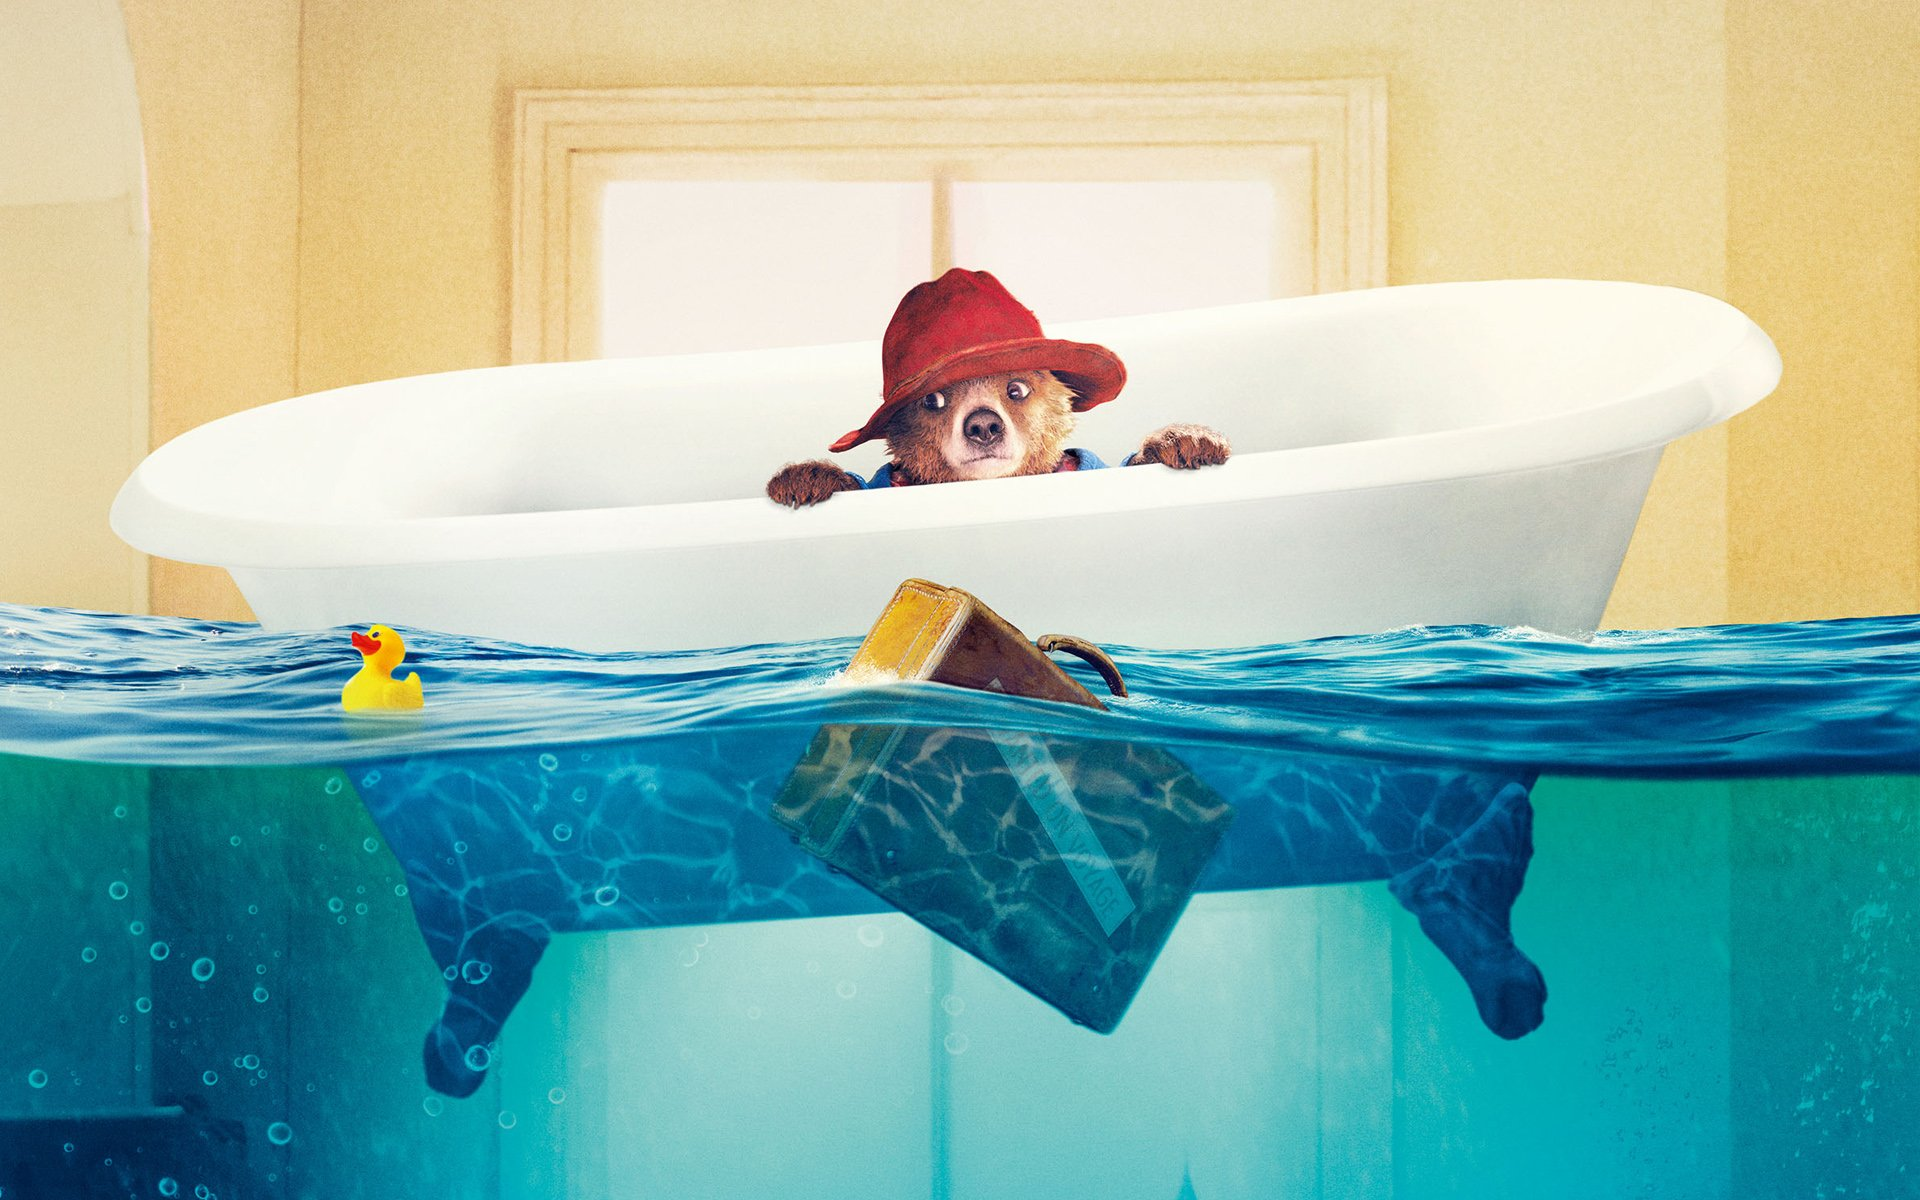 Paddington Review - OC Movie Reviews - Movie Reviews, Movie News, Documentary Reviews, Short Films, Short Film Reviews, Trailers, Movie Trailers, Interviews, film reviews, film news, hollywood, indie films, documentaries